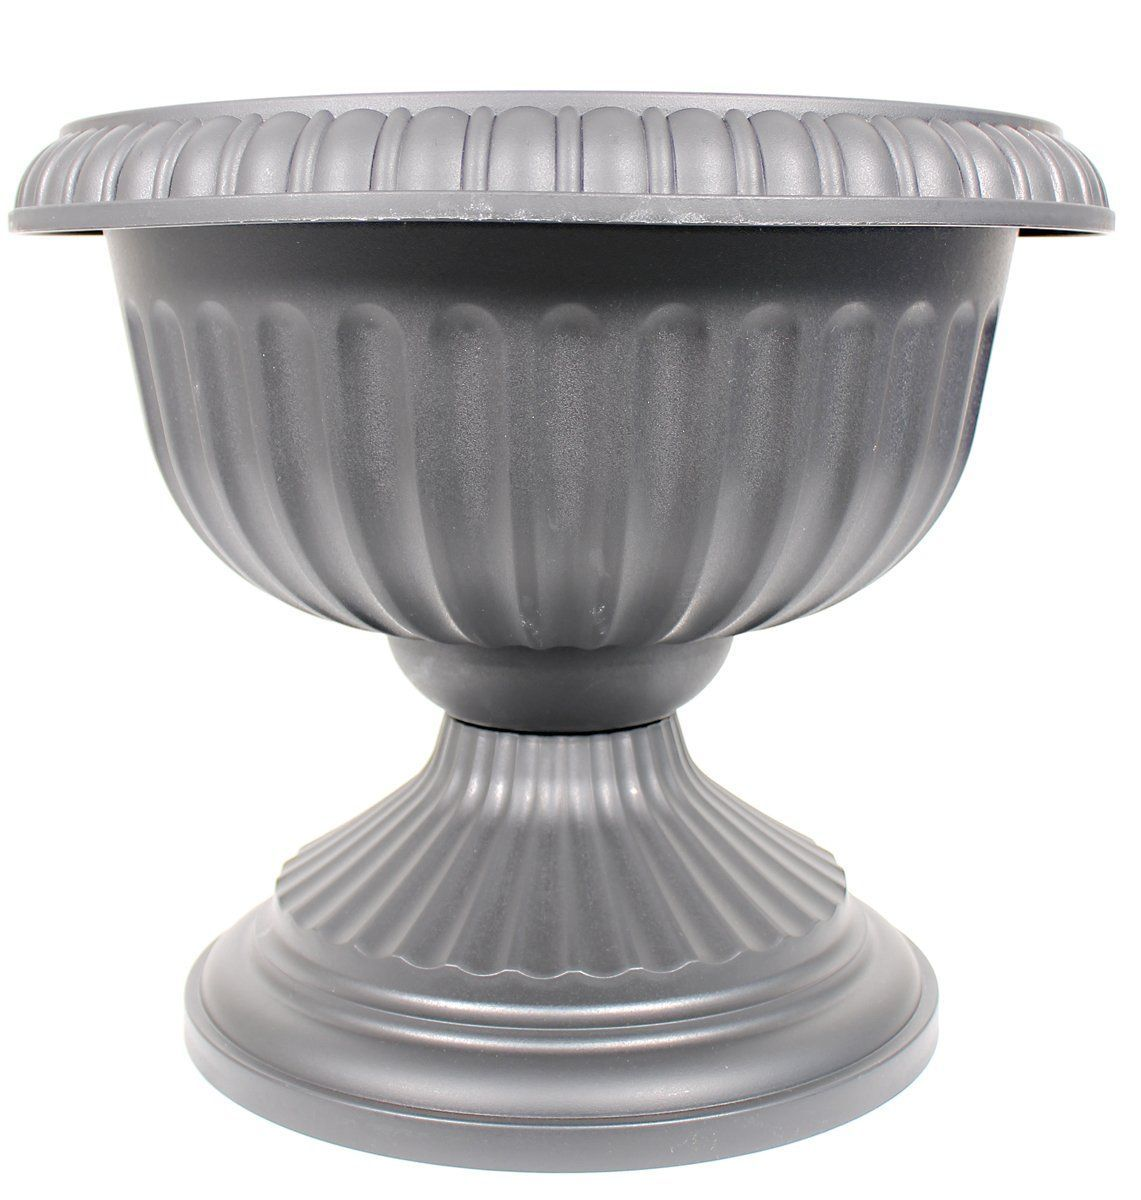 Novelty Mfg Co P Grecian Urn Planter Black 18 Inch Chậu Cay